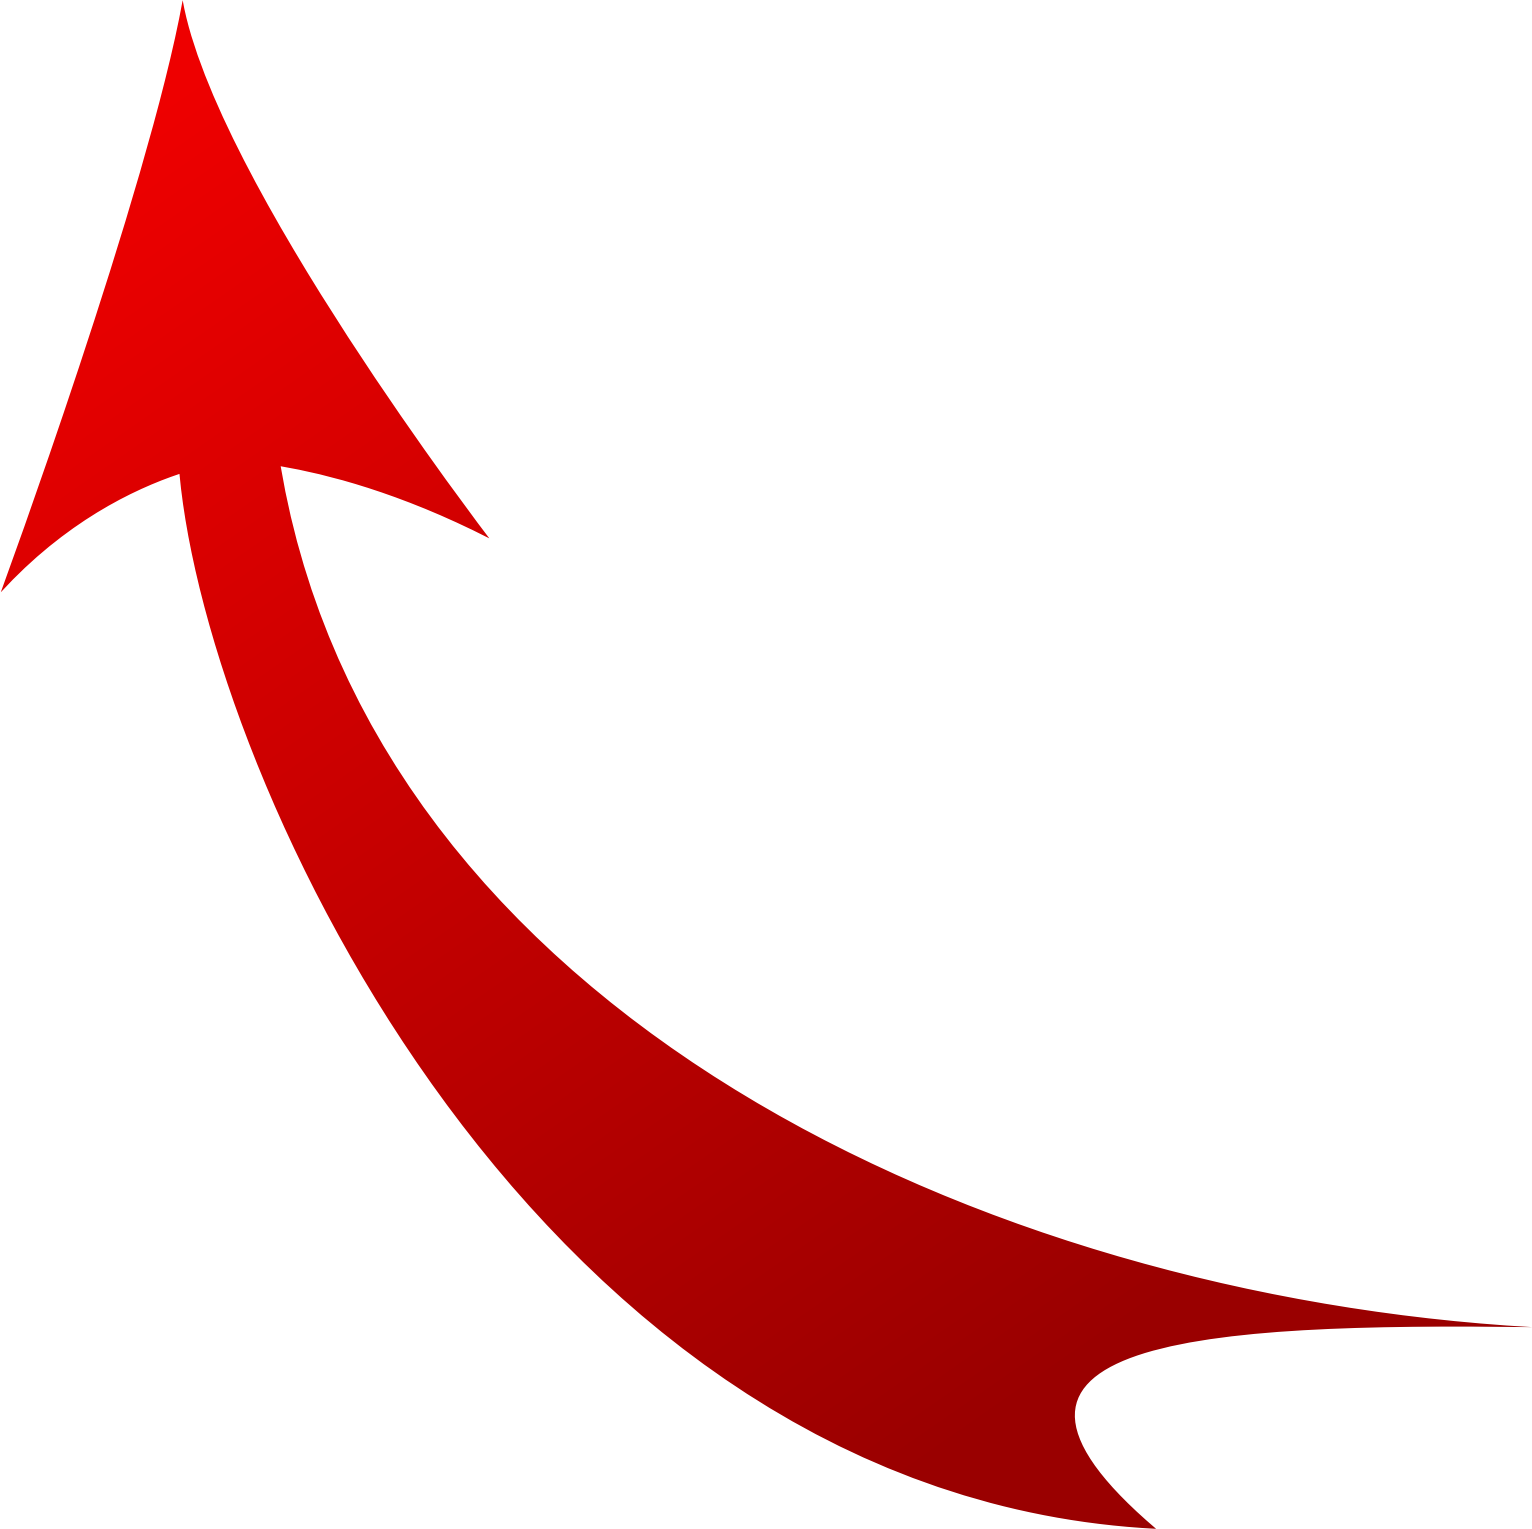 Red Curved Arrow - Cliparts.co